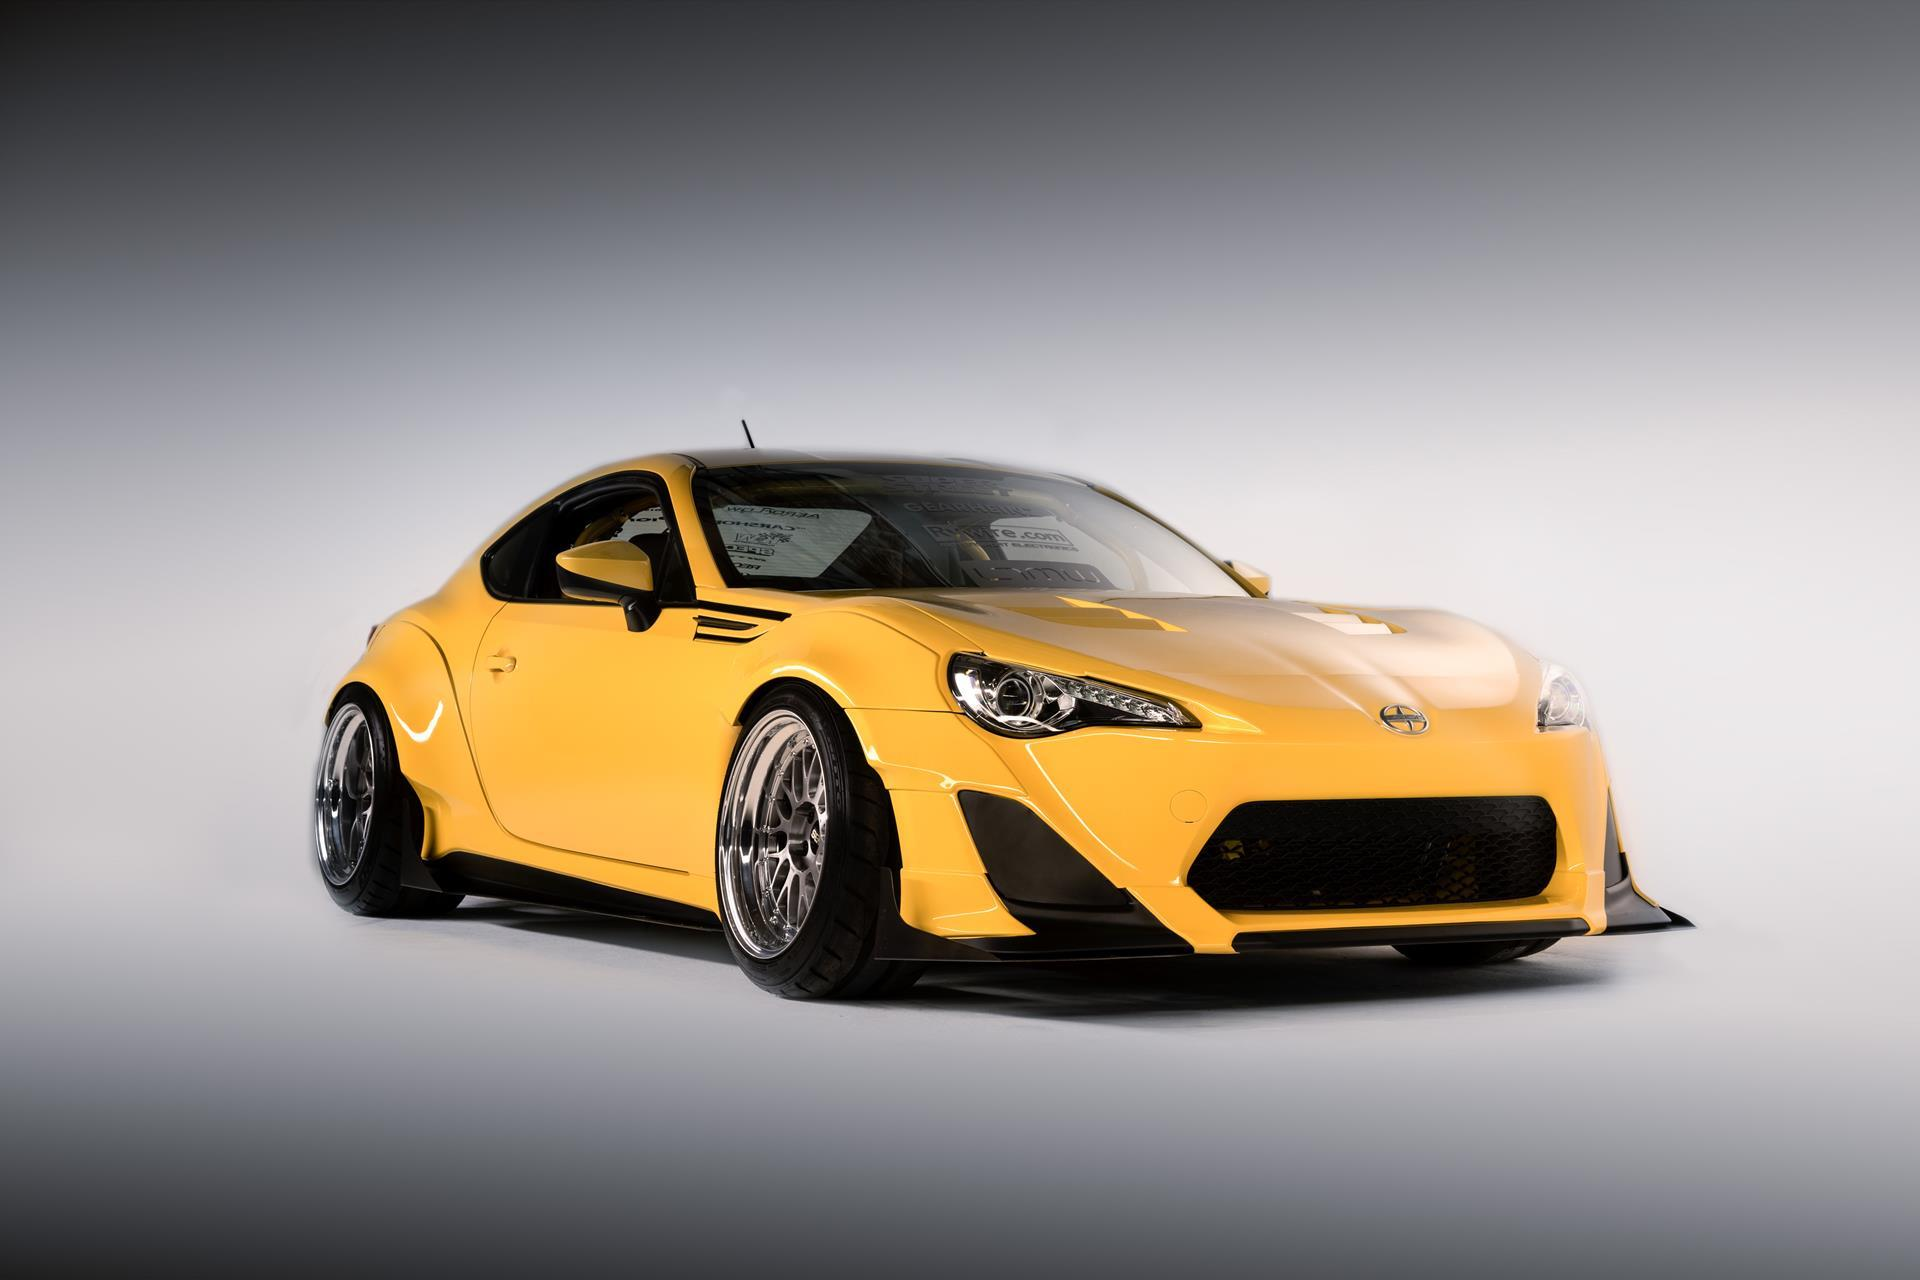 2014 Scion FR-S Super Street